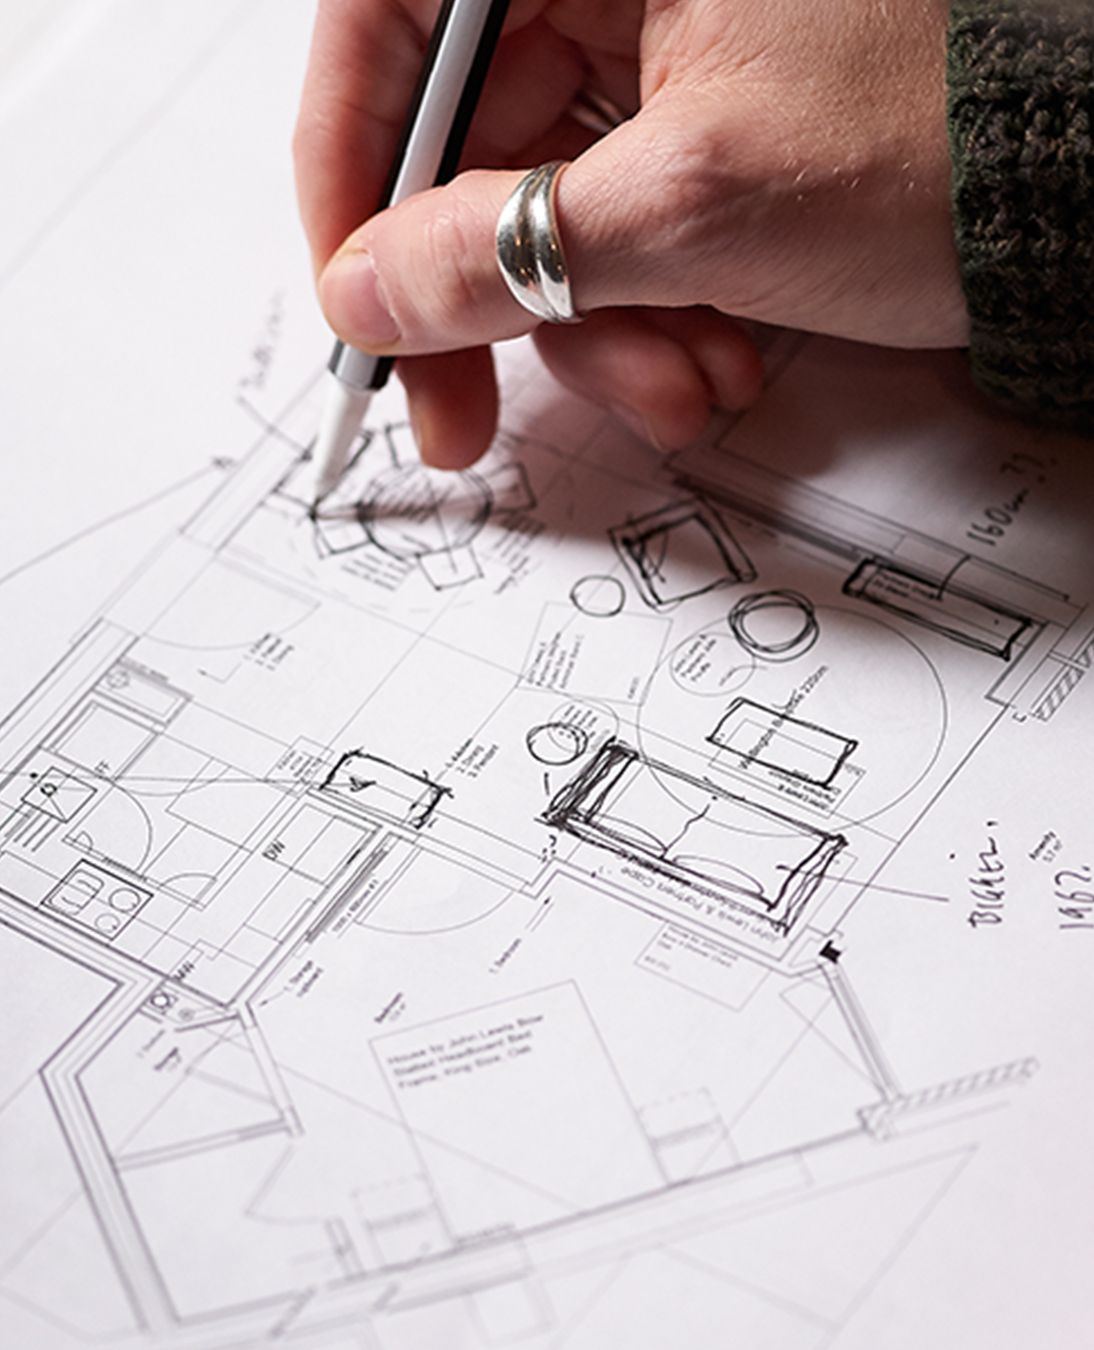 JLP-Business-Stanhope-Image-Block-2-Close-up hand making notes on floor plans